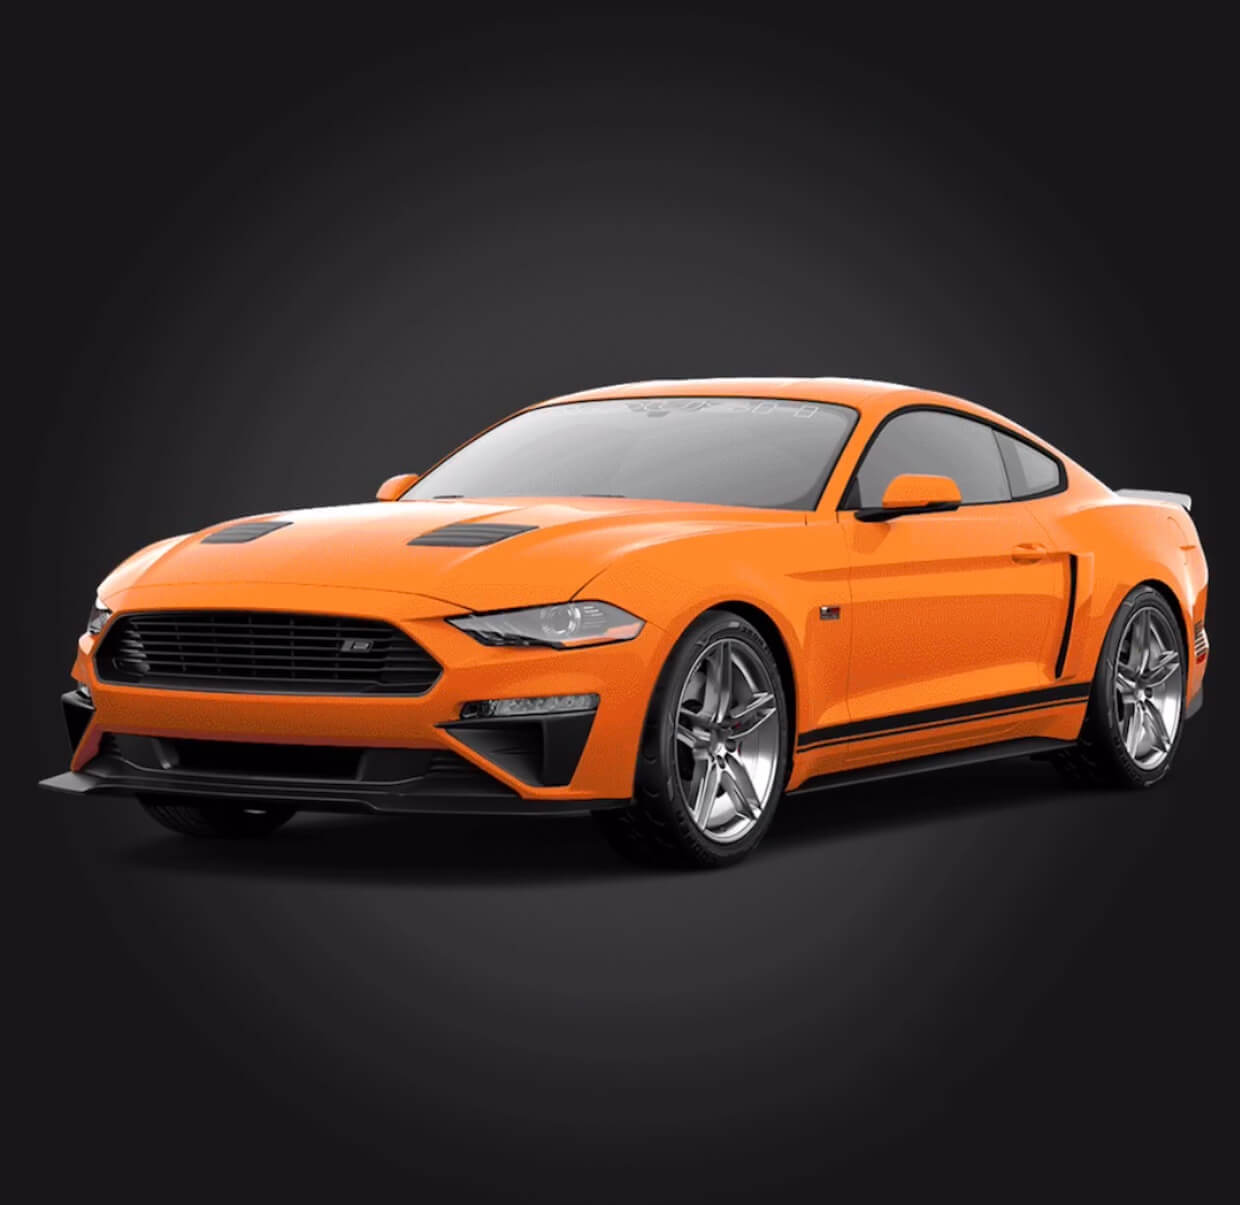 2018 ROUSH Mustang is finally here!